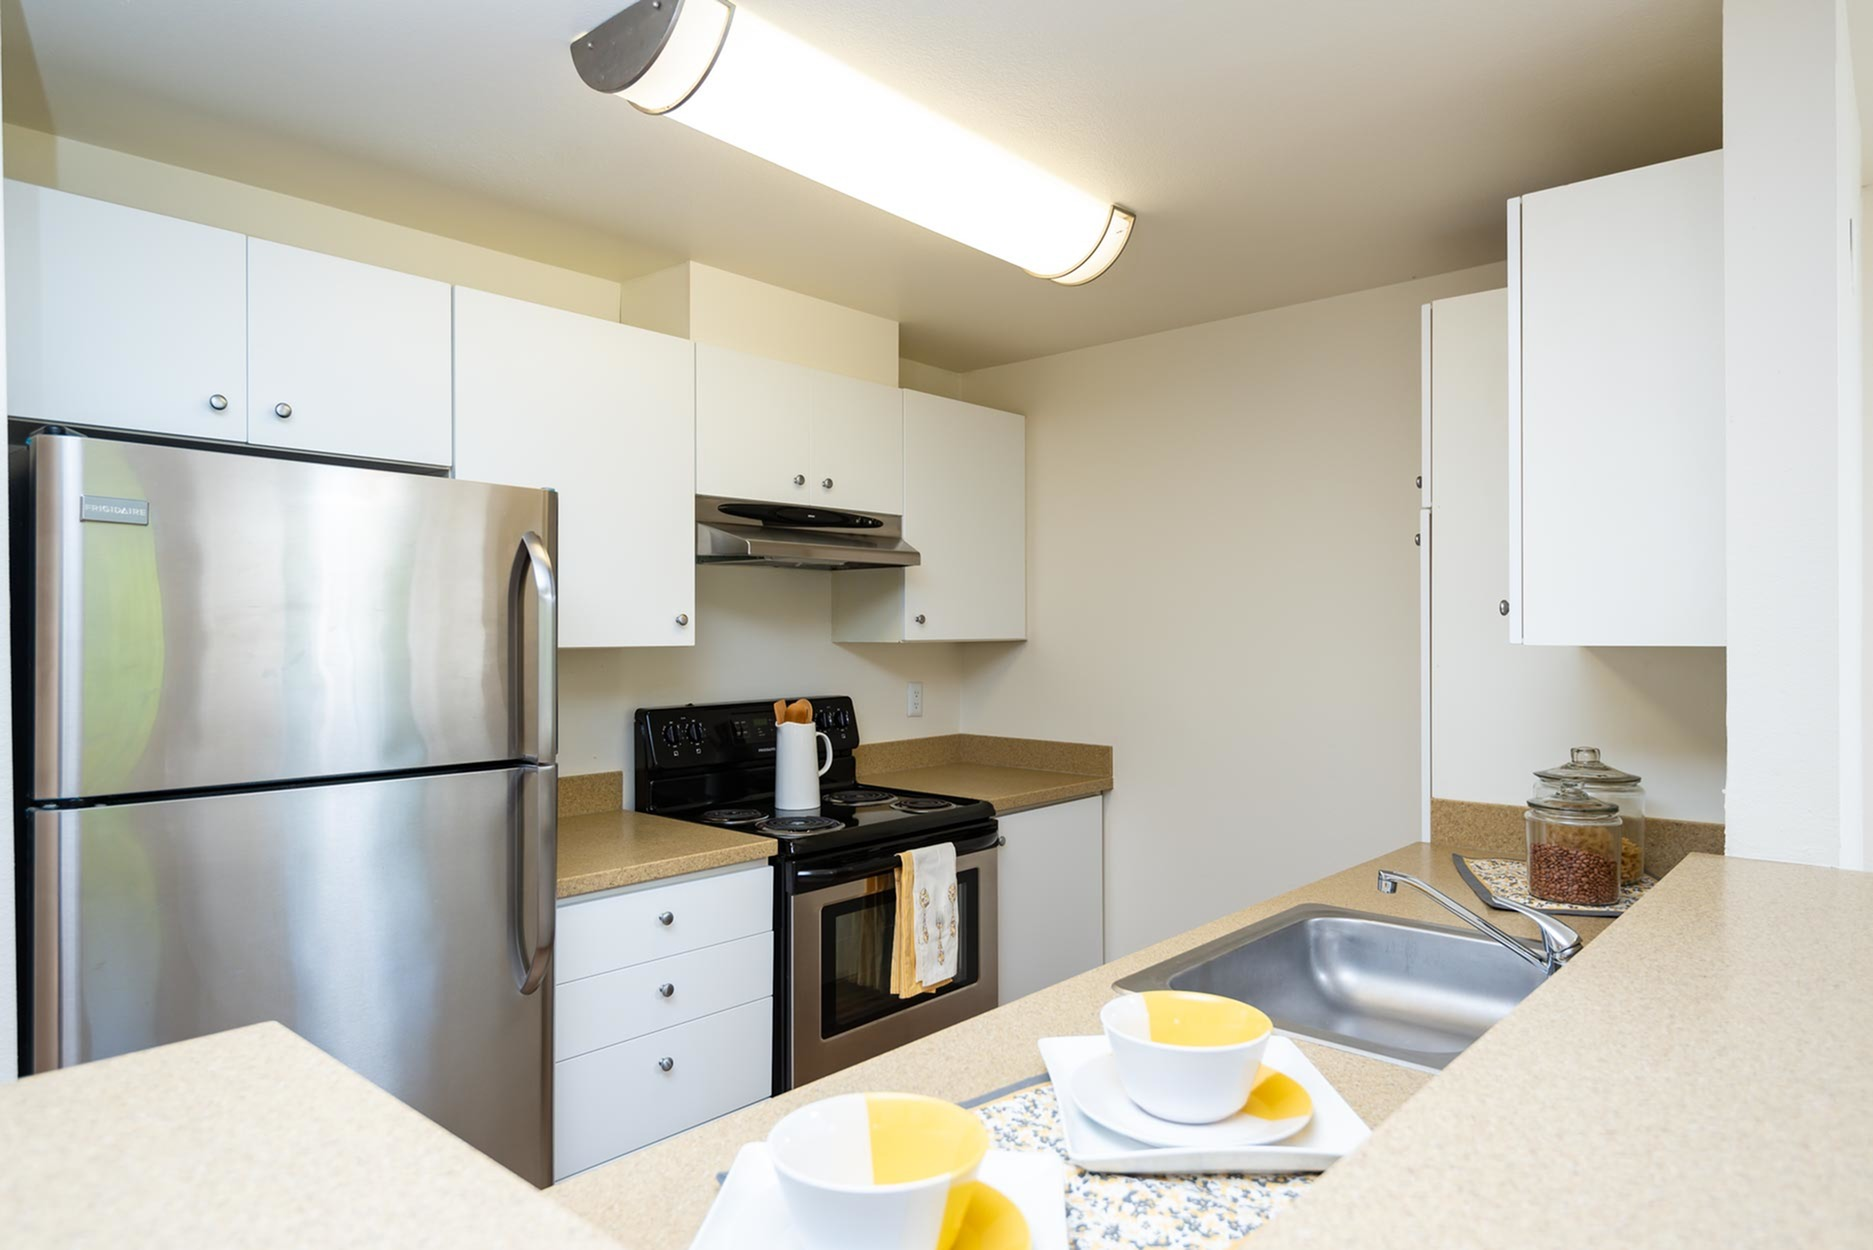 Image of Stainless Steel Appliances for Murrayhill Park Apartments